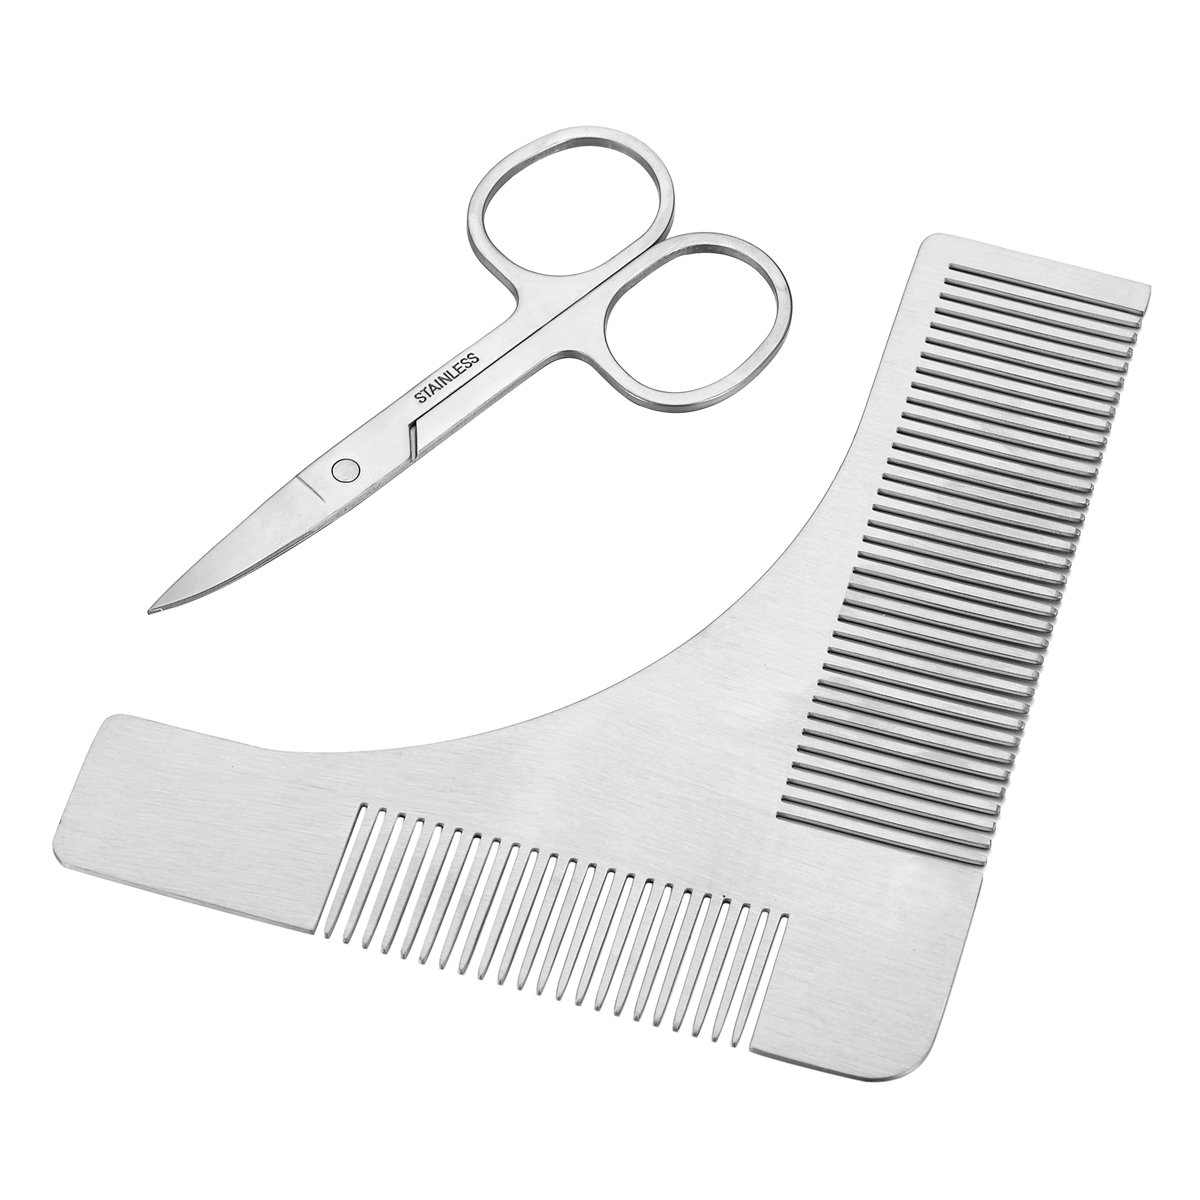 HOUSWEETY Multi-function Beard Shaping Tool Styling Template Comb Facial Hair Trimmer for Men HOUSWEETYB111587